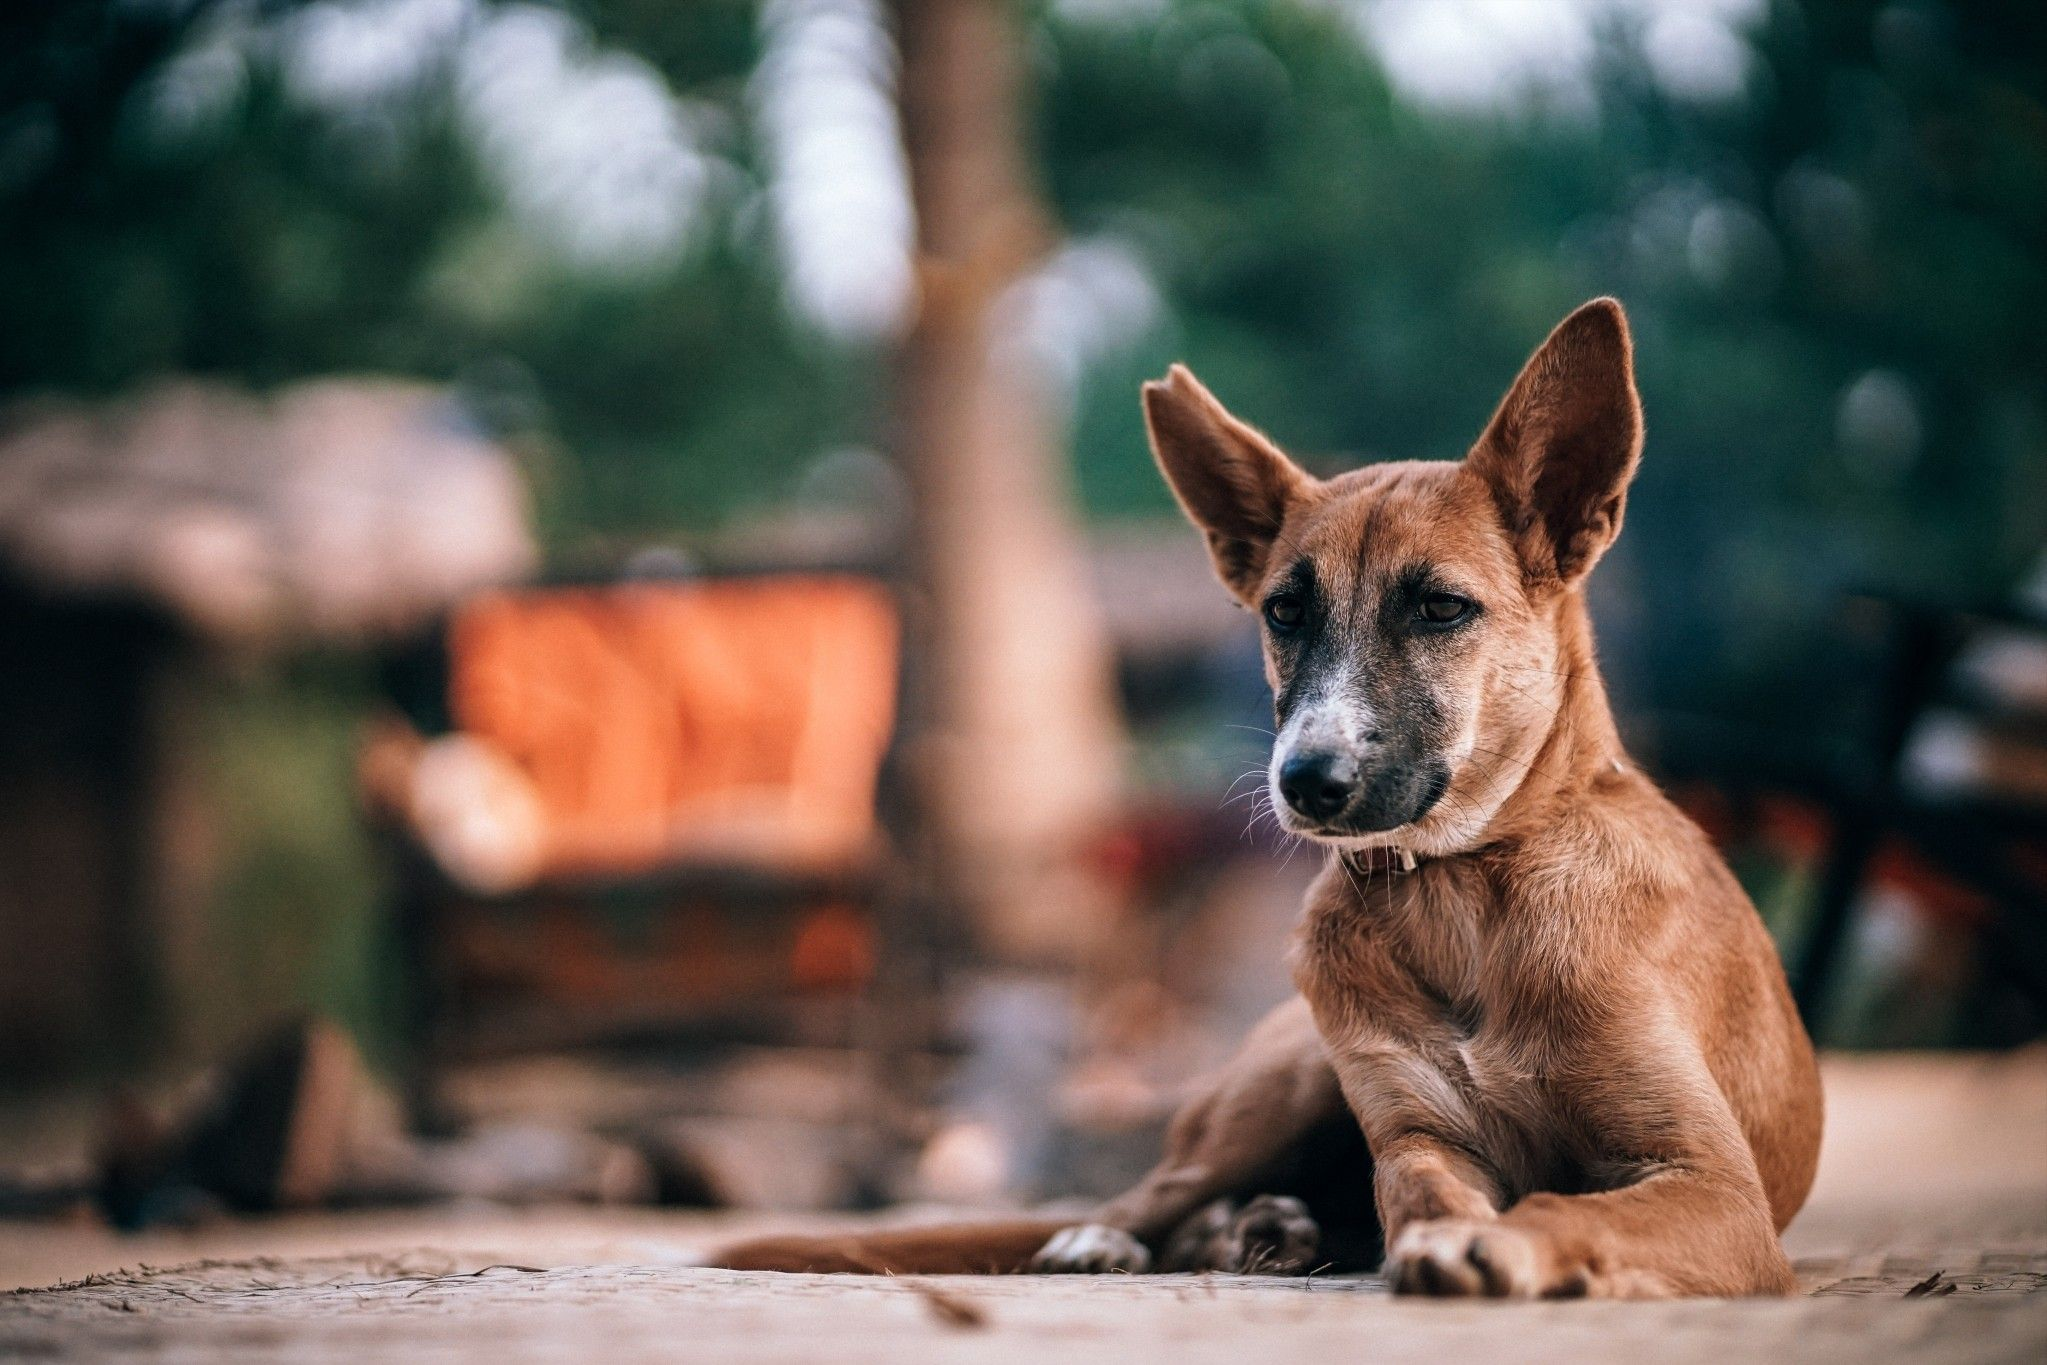 Pin By Kalyan Stanliey On Special Photograpy S In 2019 Dog